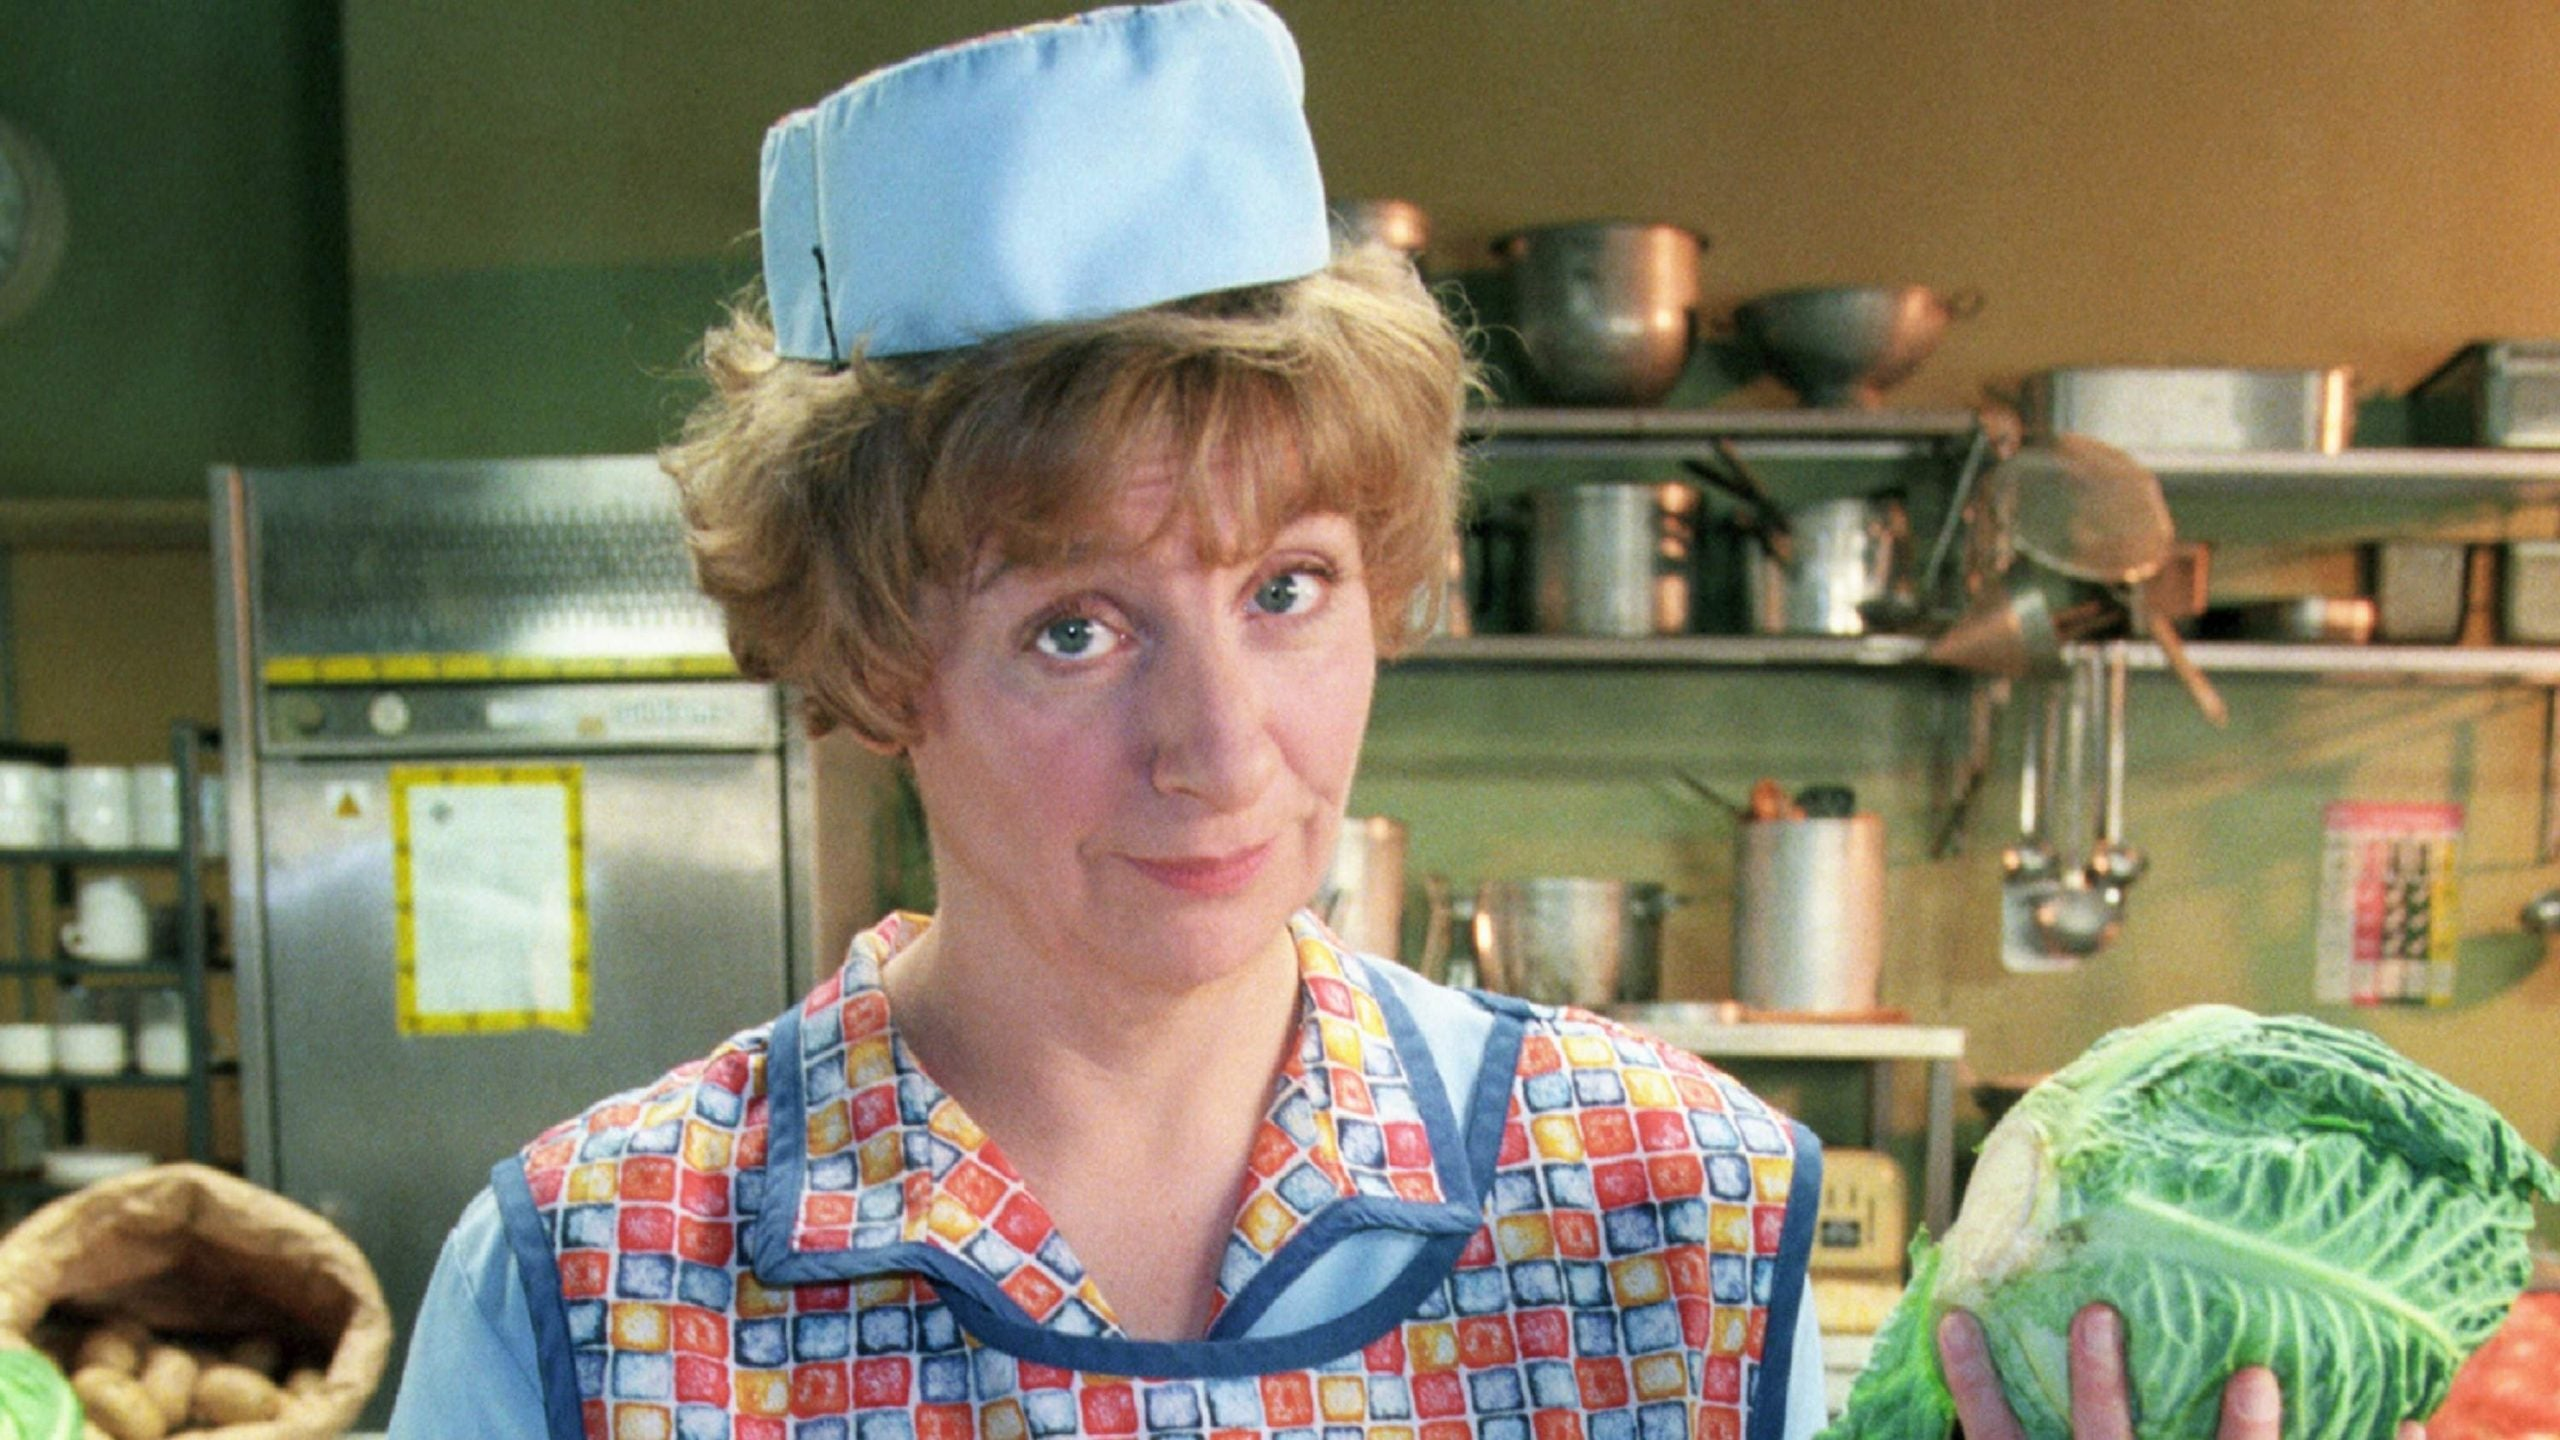 Victoria Wood gave us the gift of being able to laugh at ourselves